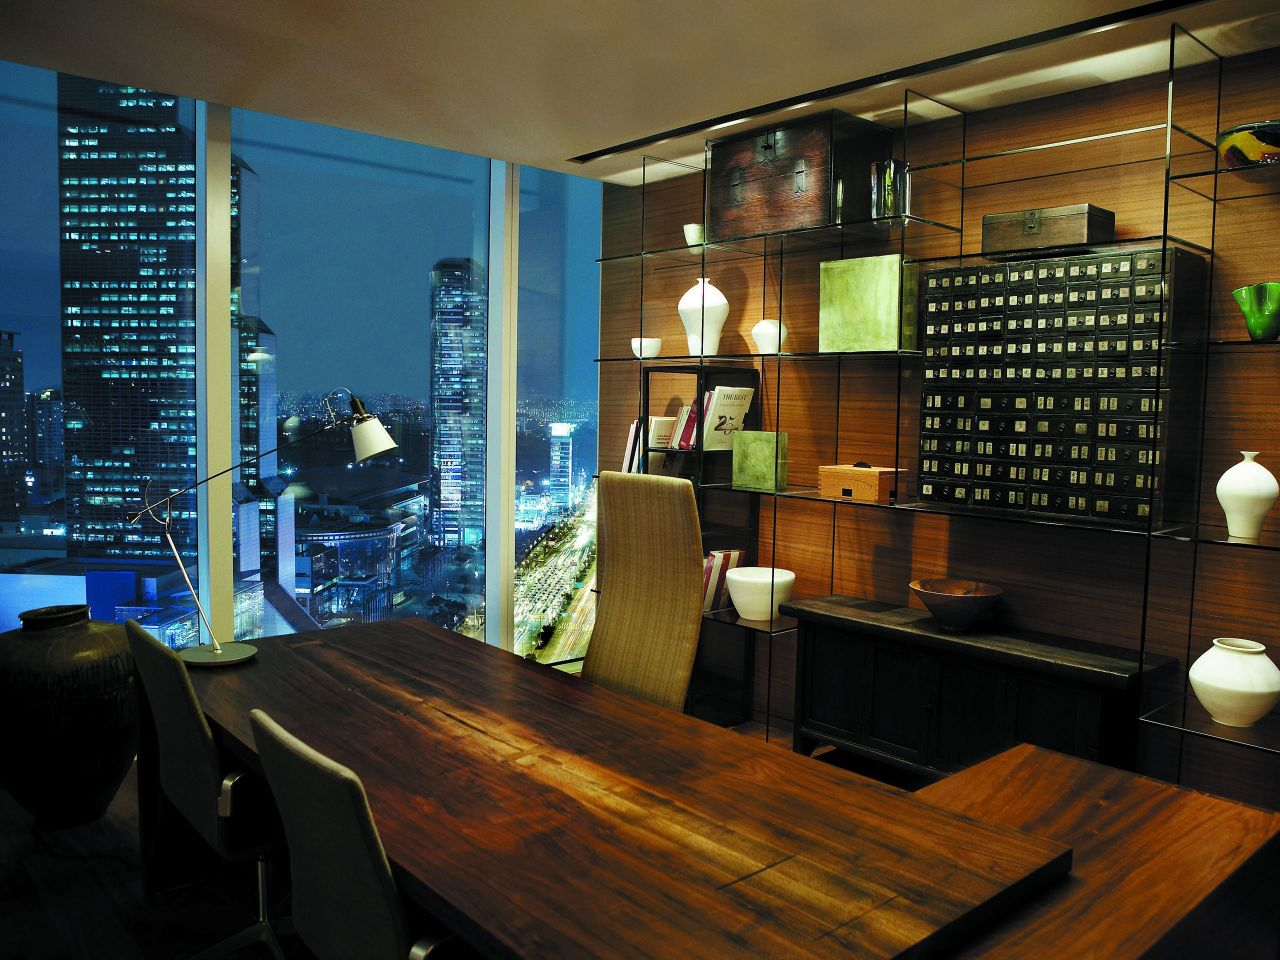 Park Hyatt Deluxe Room table